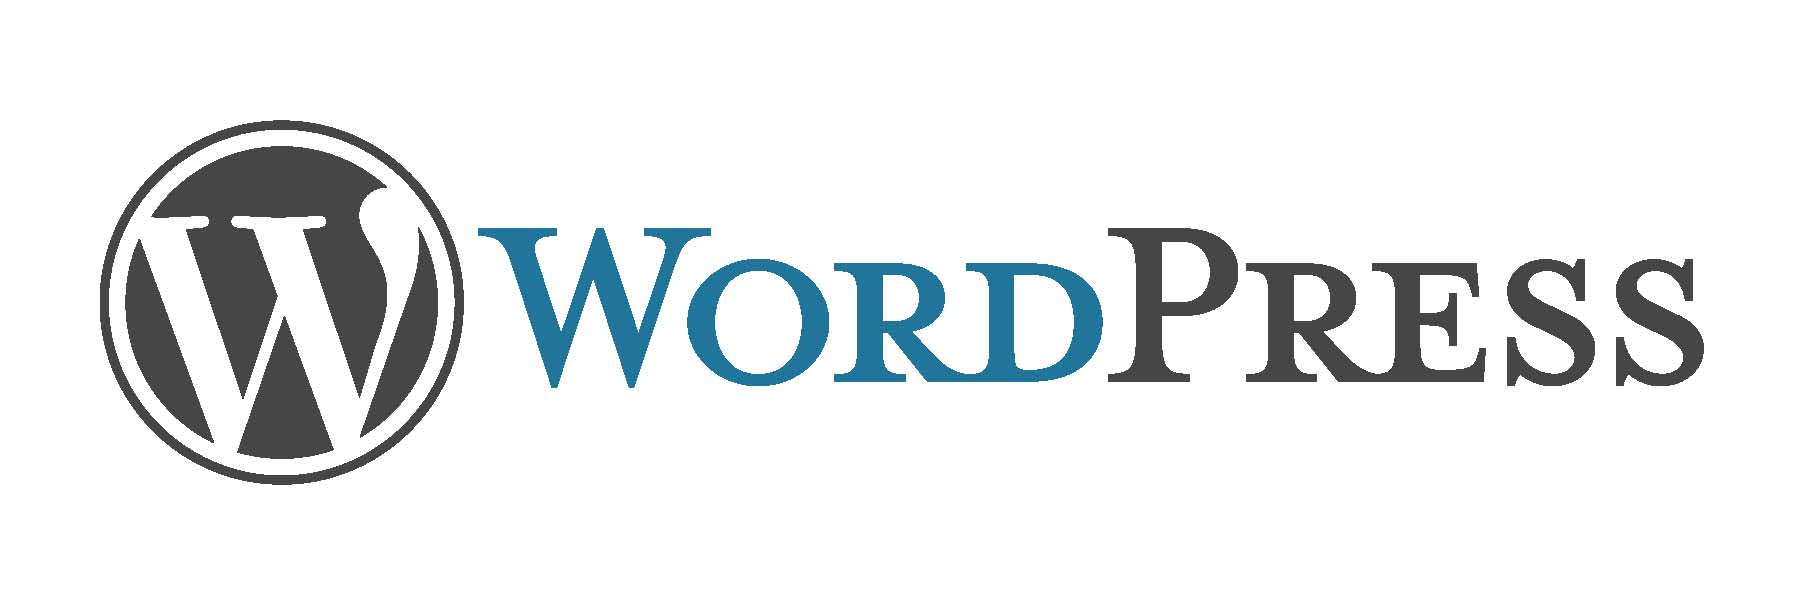 wordpress logo openinnova